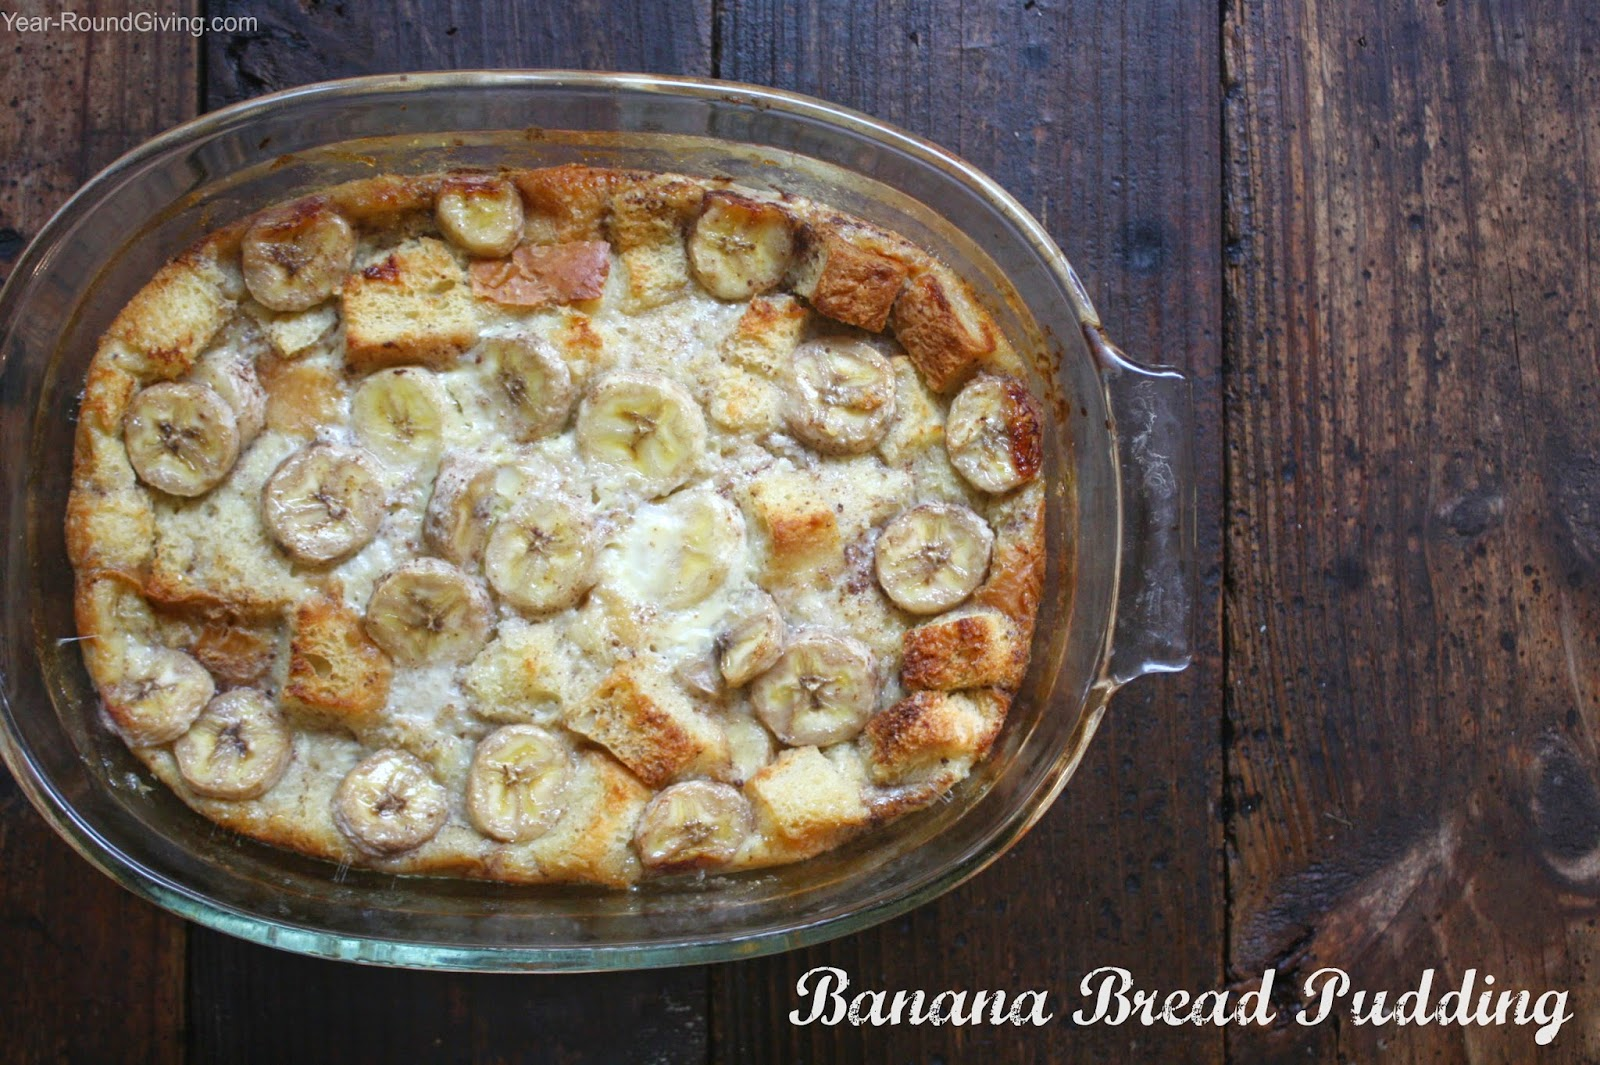 Year-Round Giving: Banana Bread Pudding